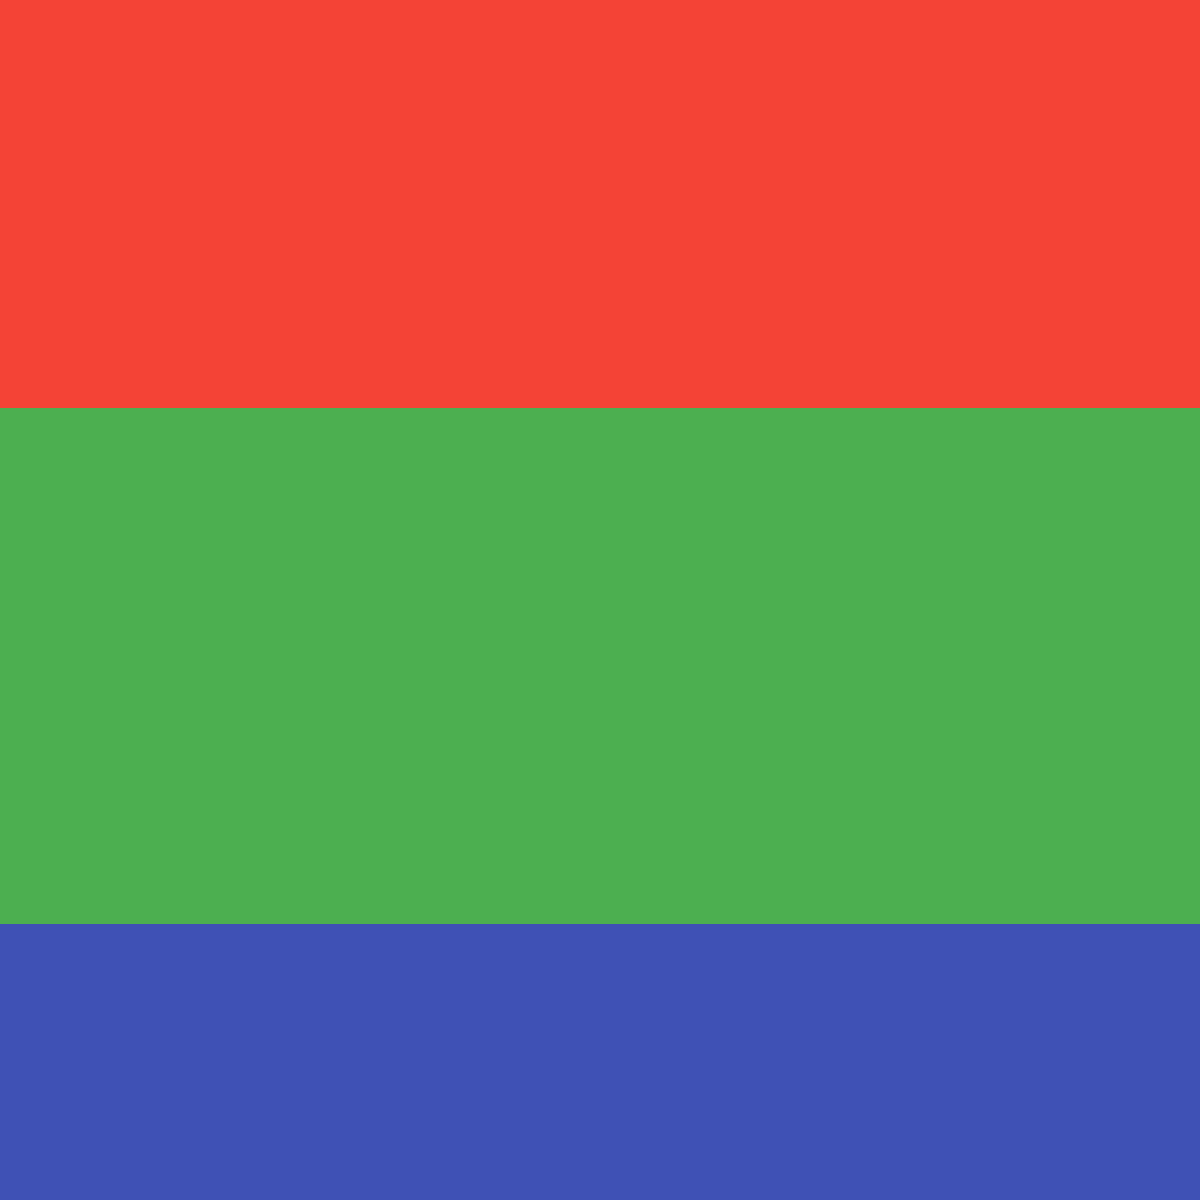 red, green, blue  by yeetboi12346